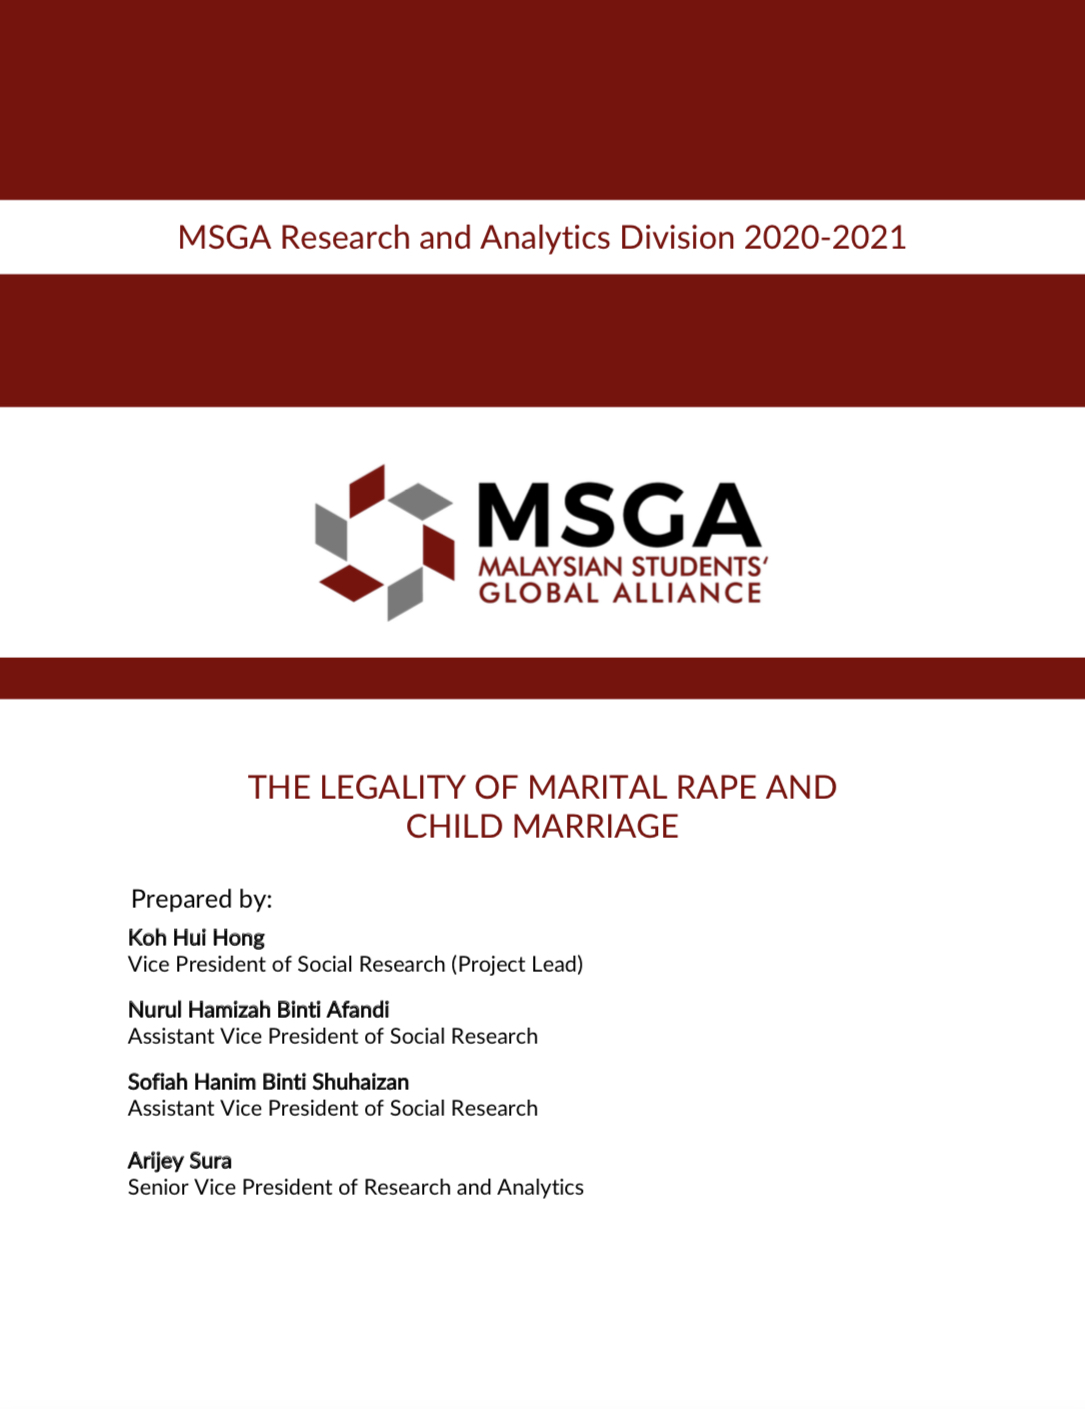 Cover page of publication